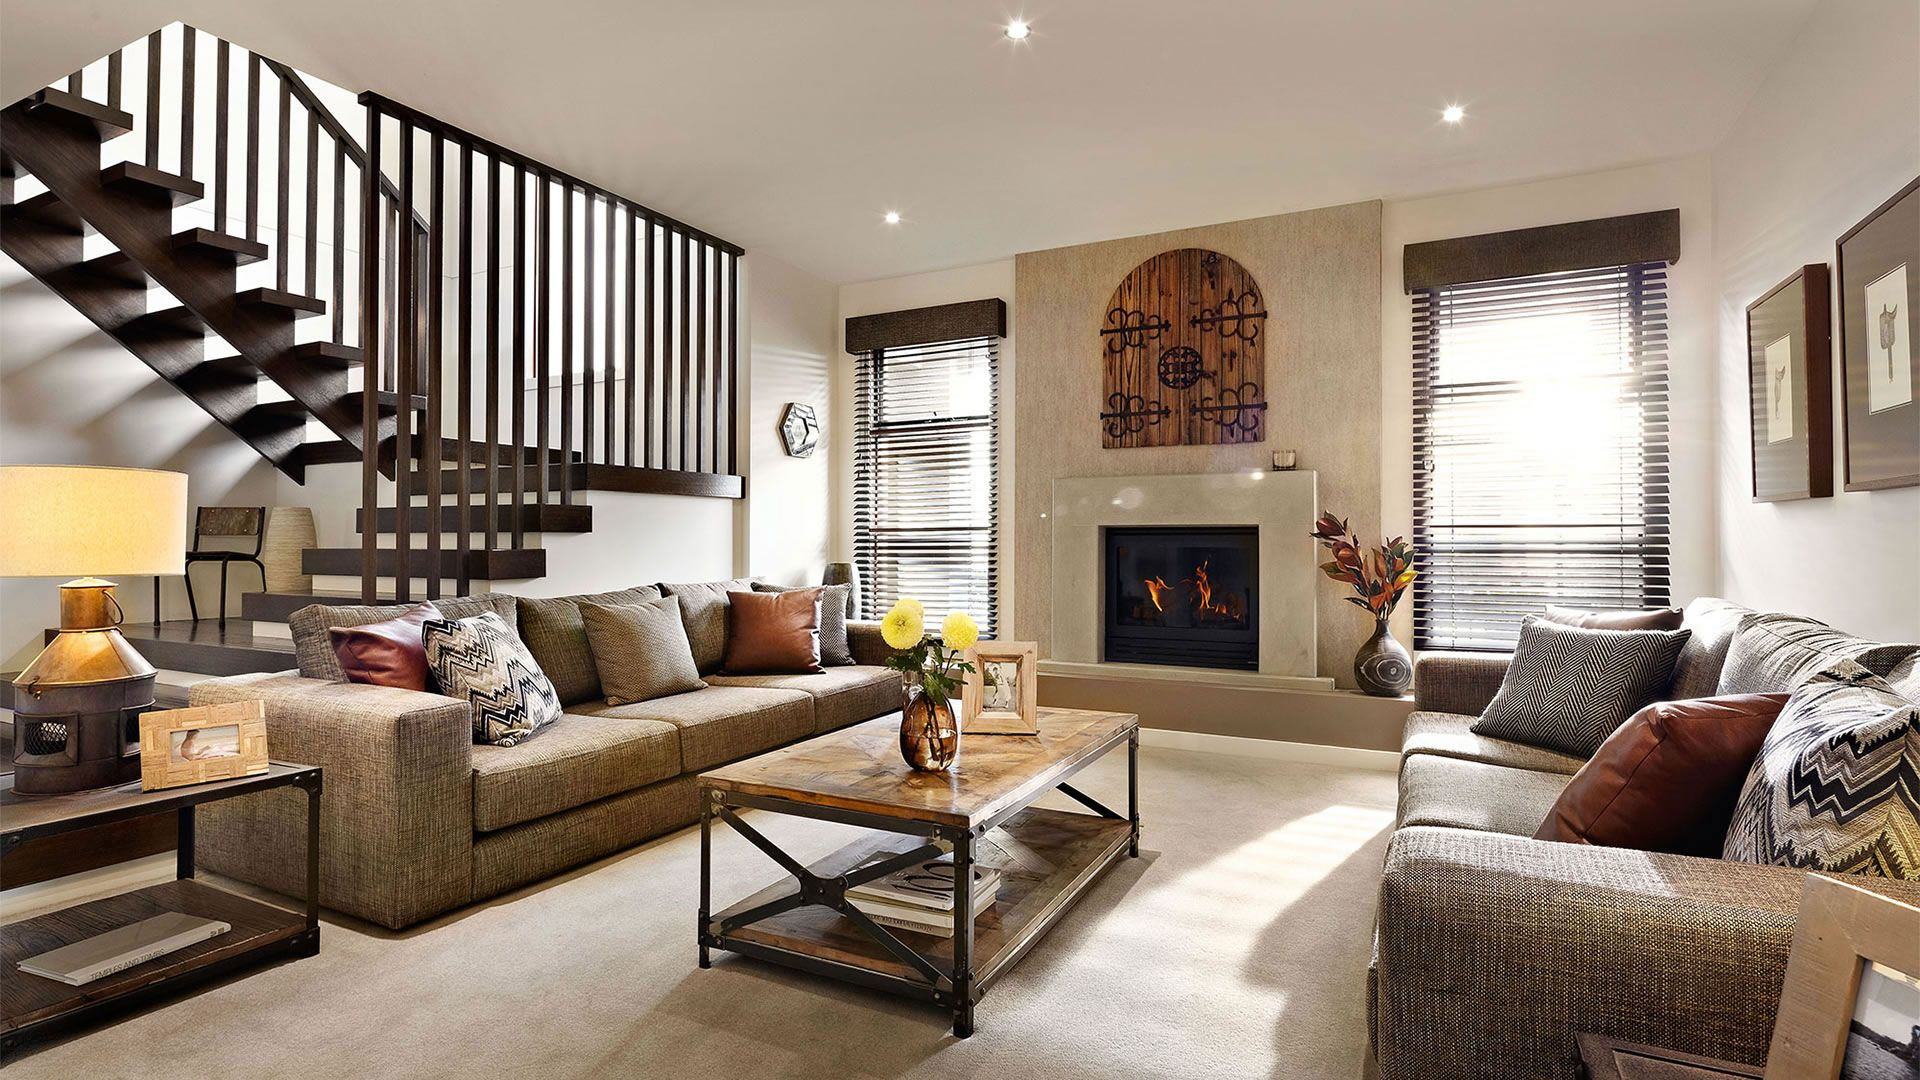 Superbe Classy Rustic Living Room Interior With Modern Elements